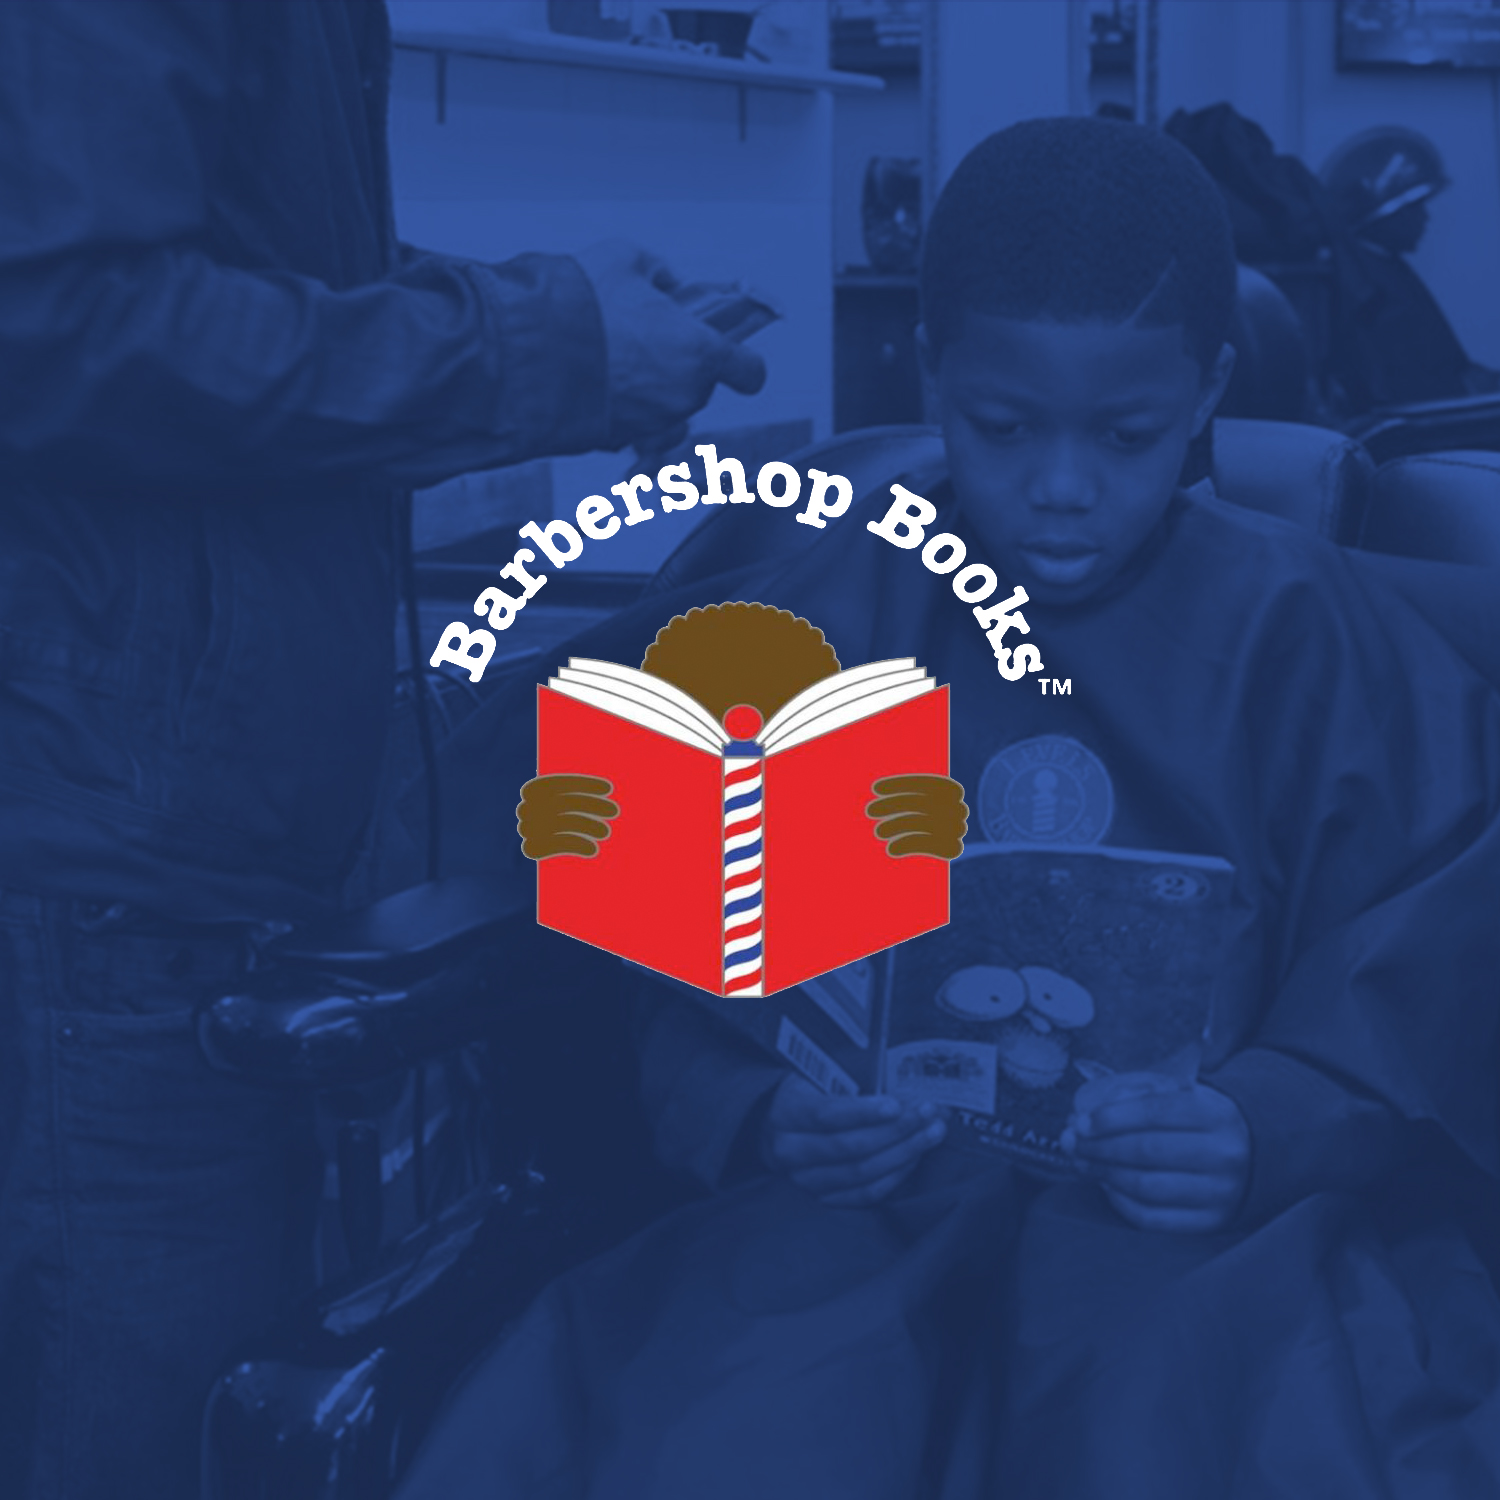 BarbershopBooks-ImageBox.jpg